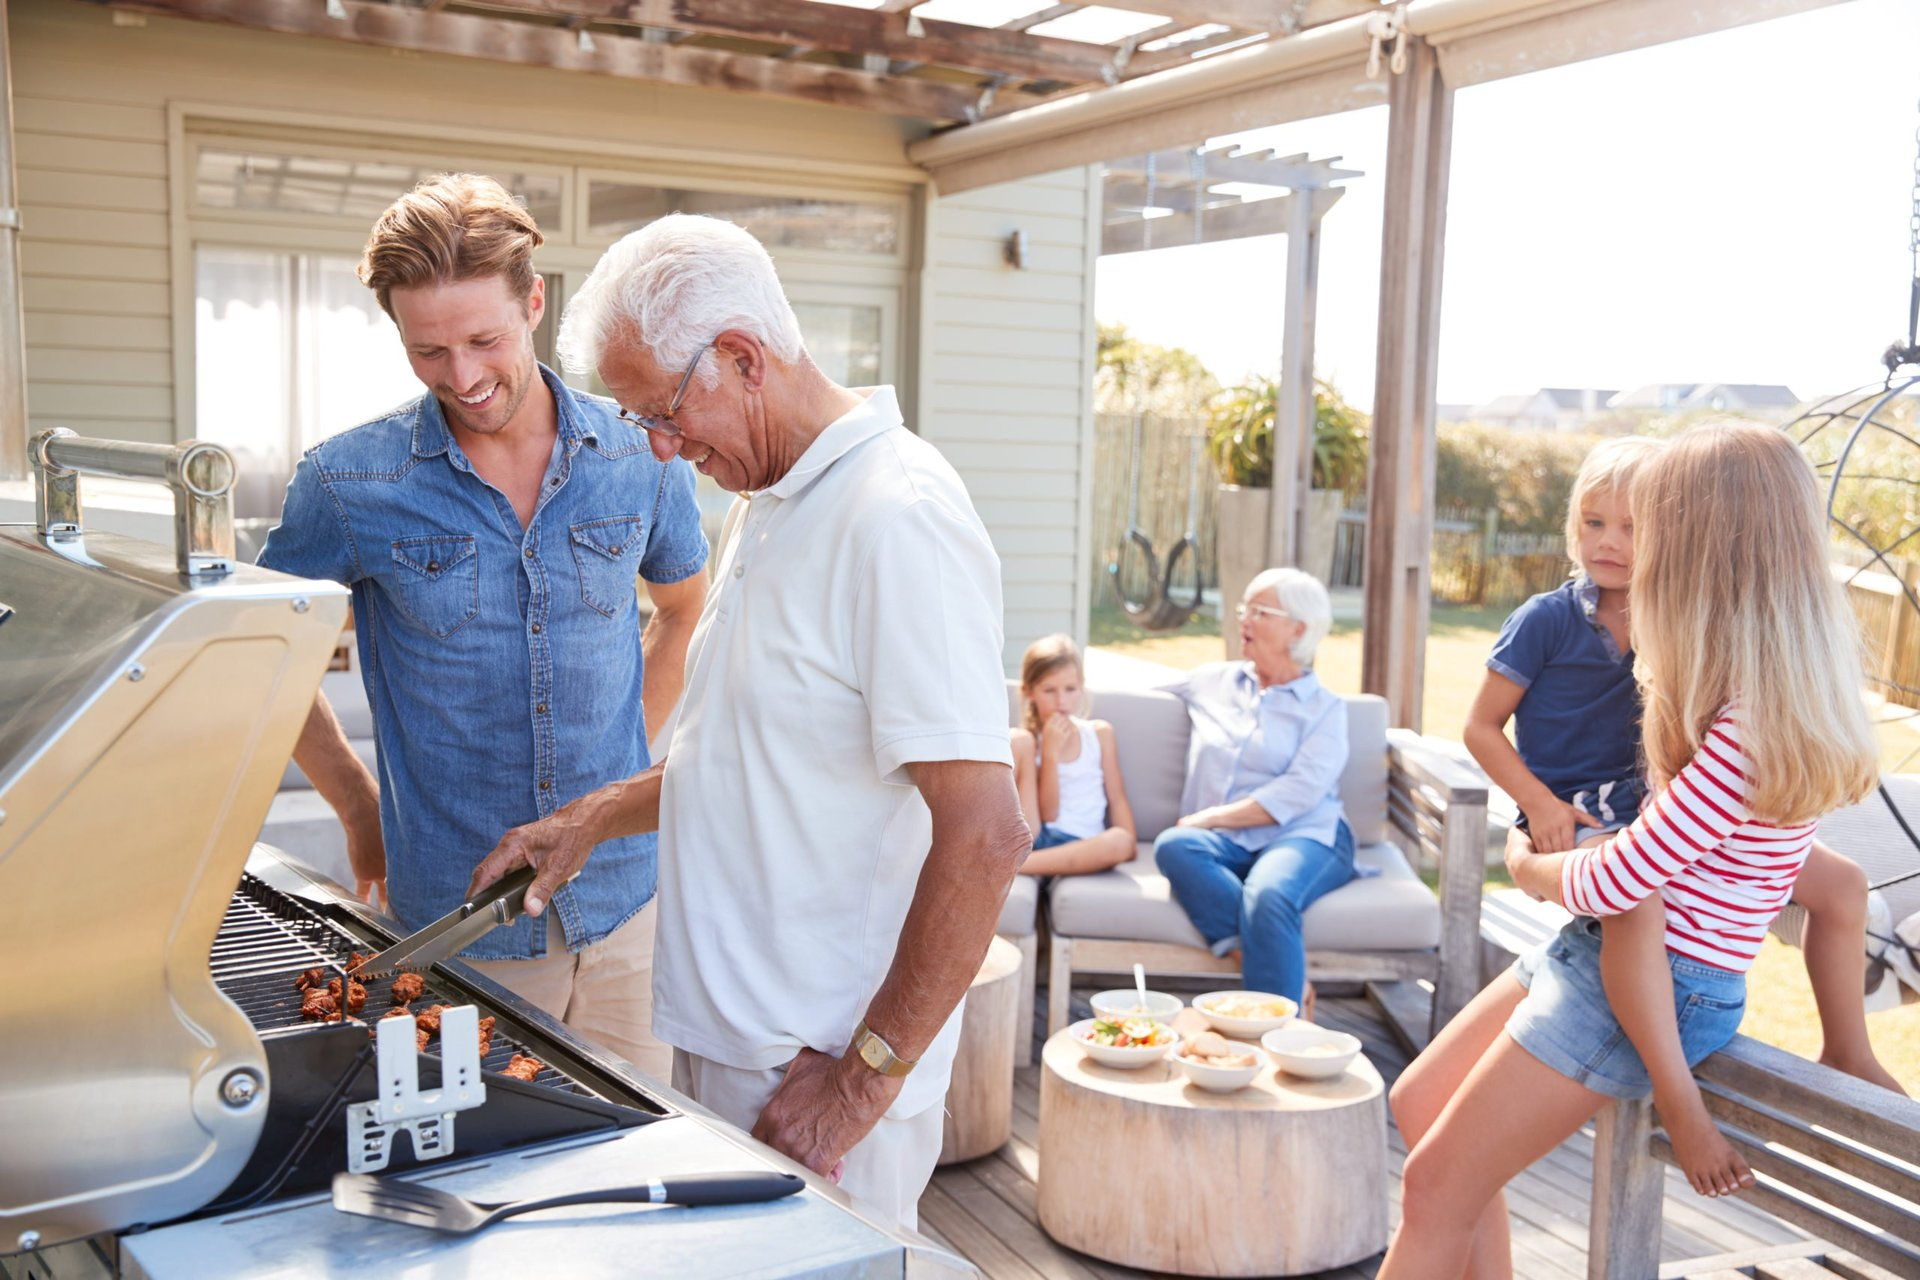 Family grilling on the deck of their home